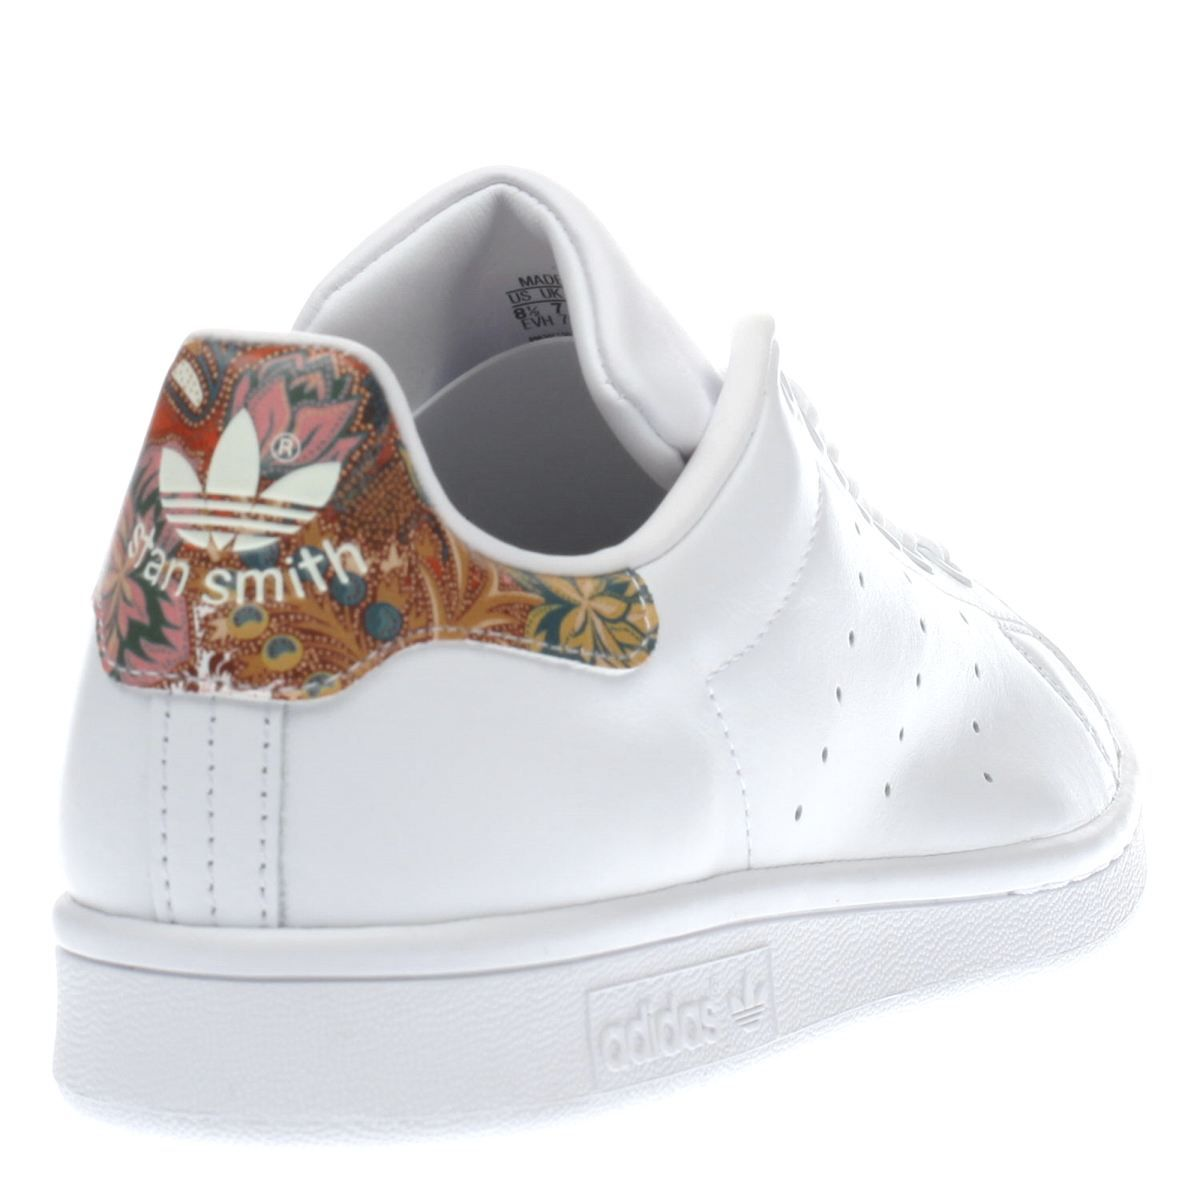 Stan Adidas Smith Floral TrainersAdi Whiteamp; Orange Womens eHEWYD9I2